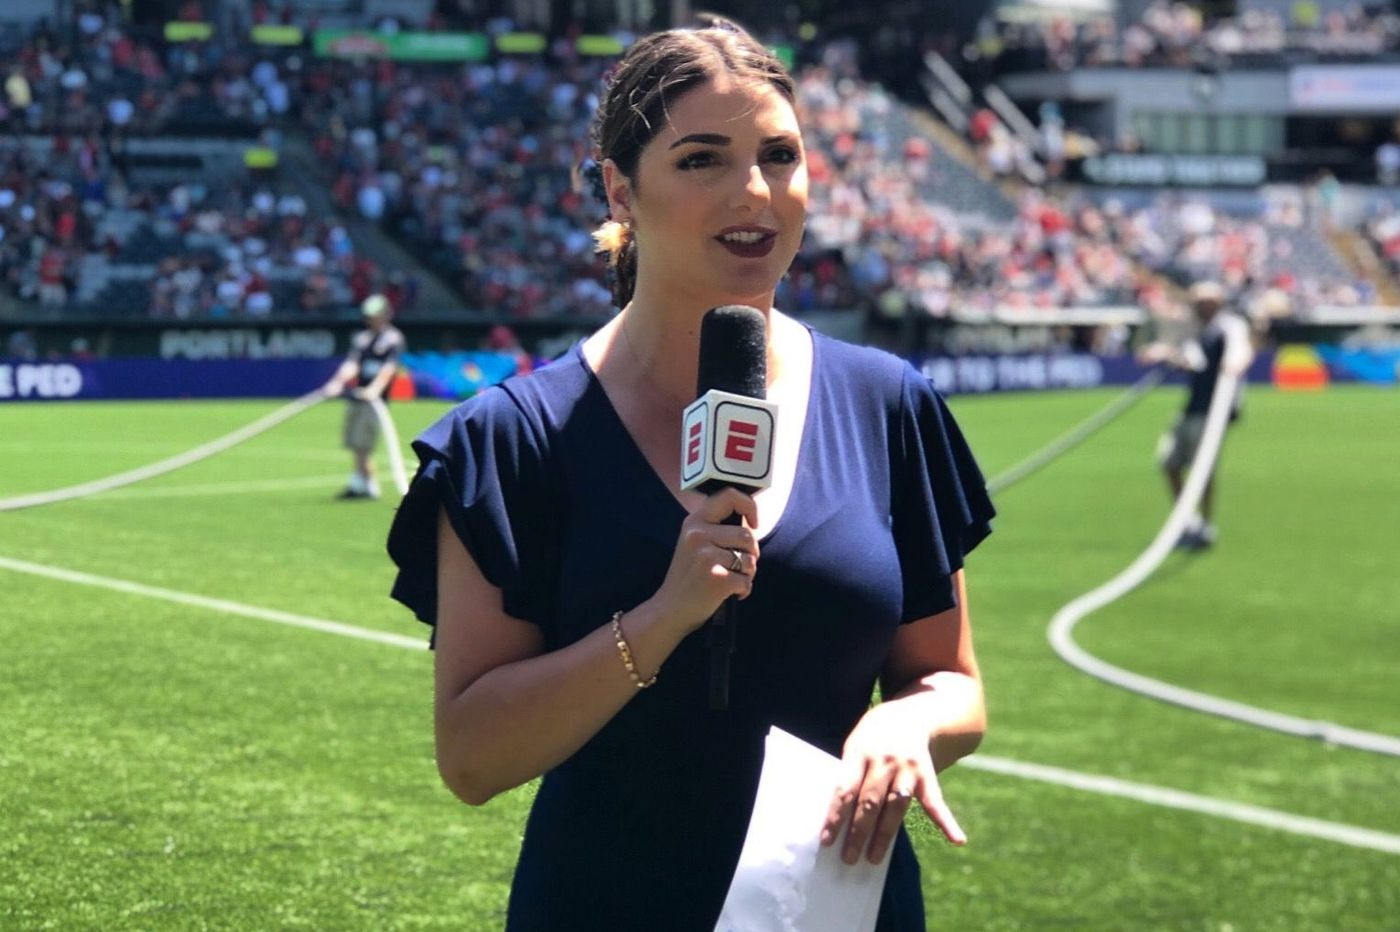 Union's TV host Marisa Pilla is latest Philly-area sports broadcaster to reach national stage, as NWSL and MLS